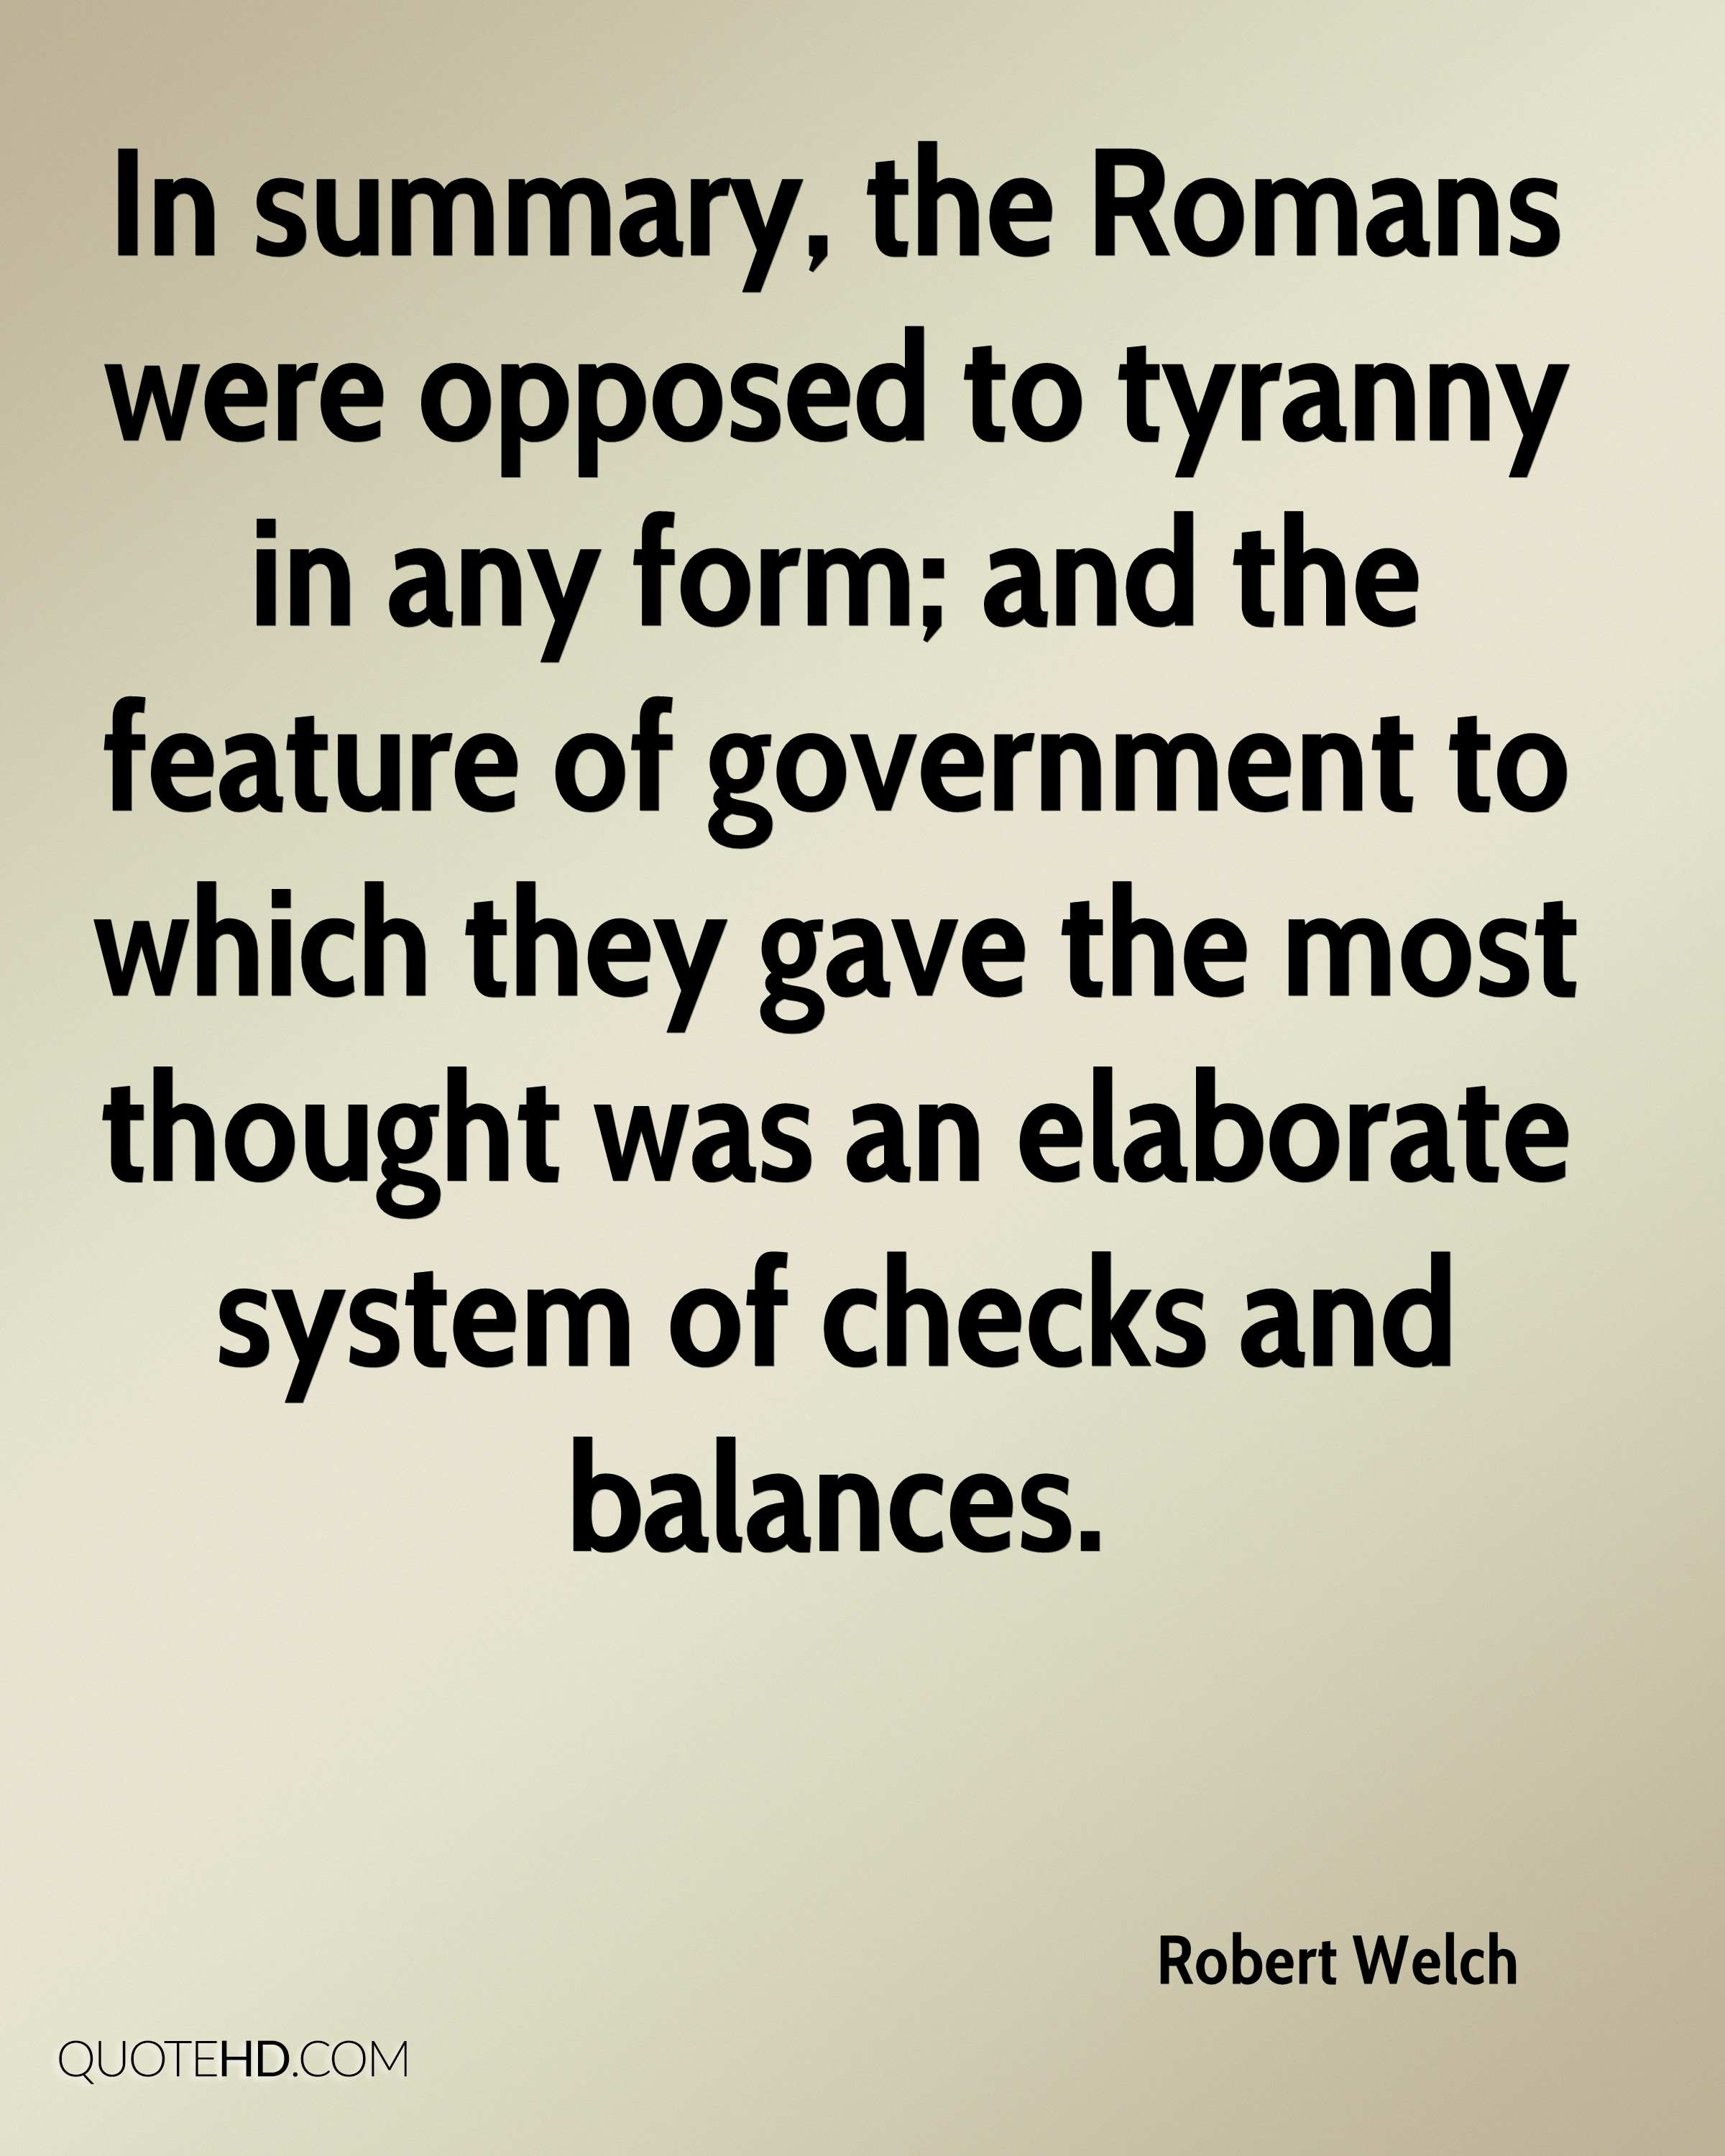 In summary, the Romans were opposed to tyranny in any form; and the feature of government to which they gave the most thought was an elaborate system of checks and balances.